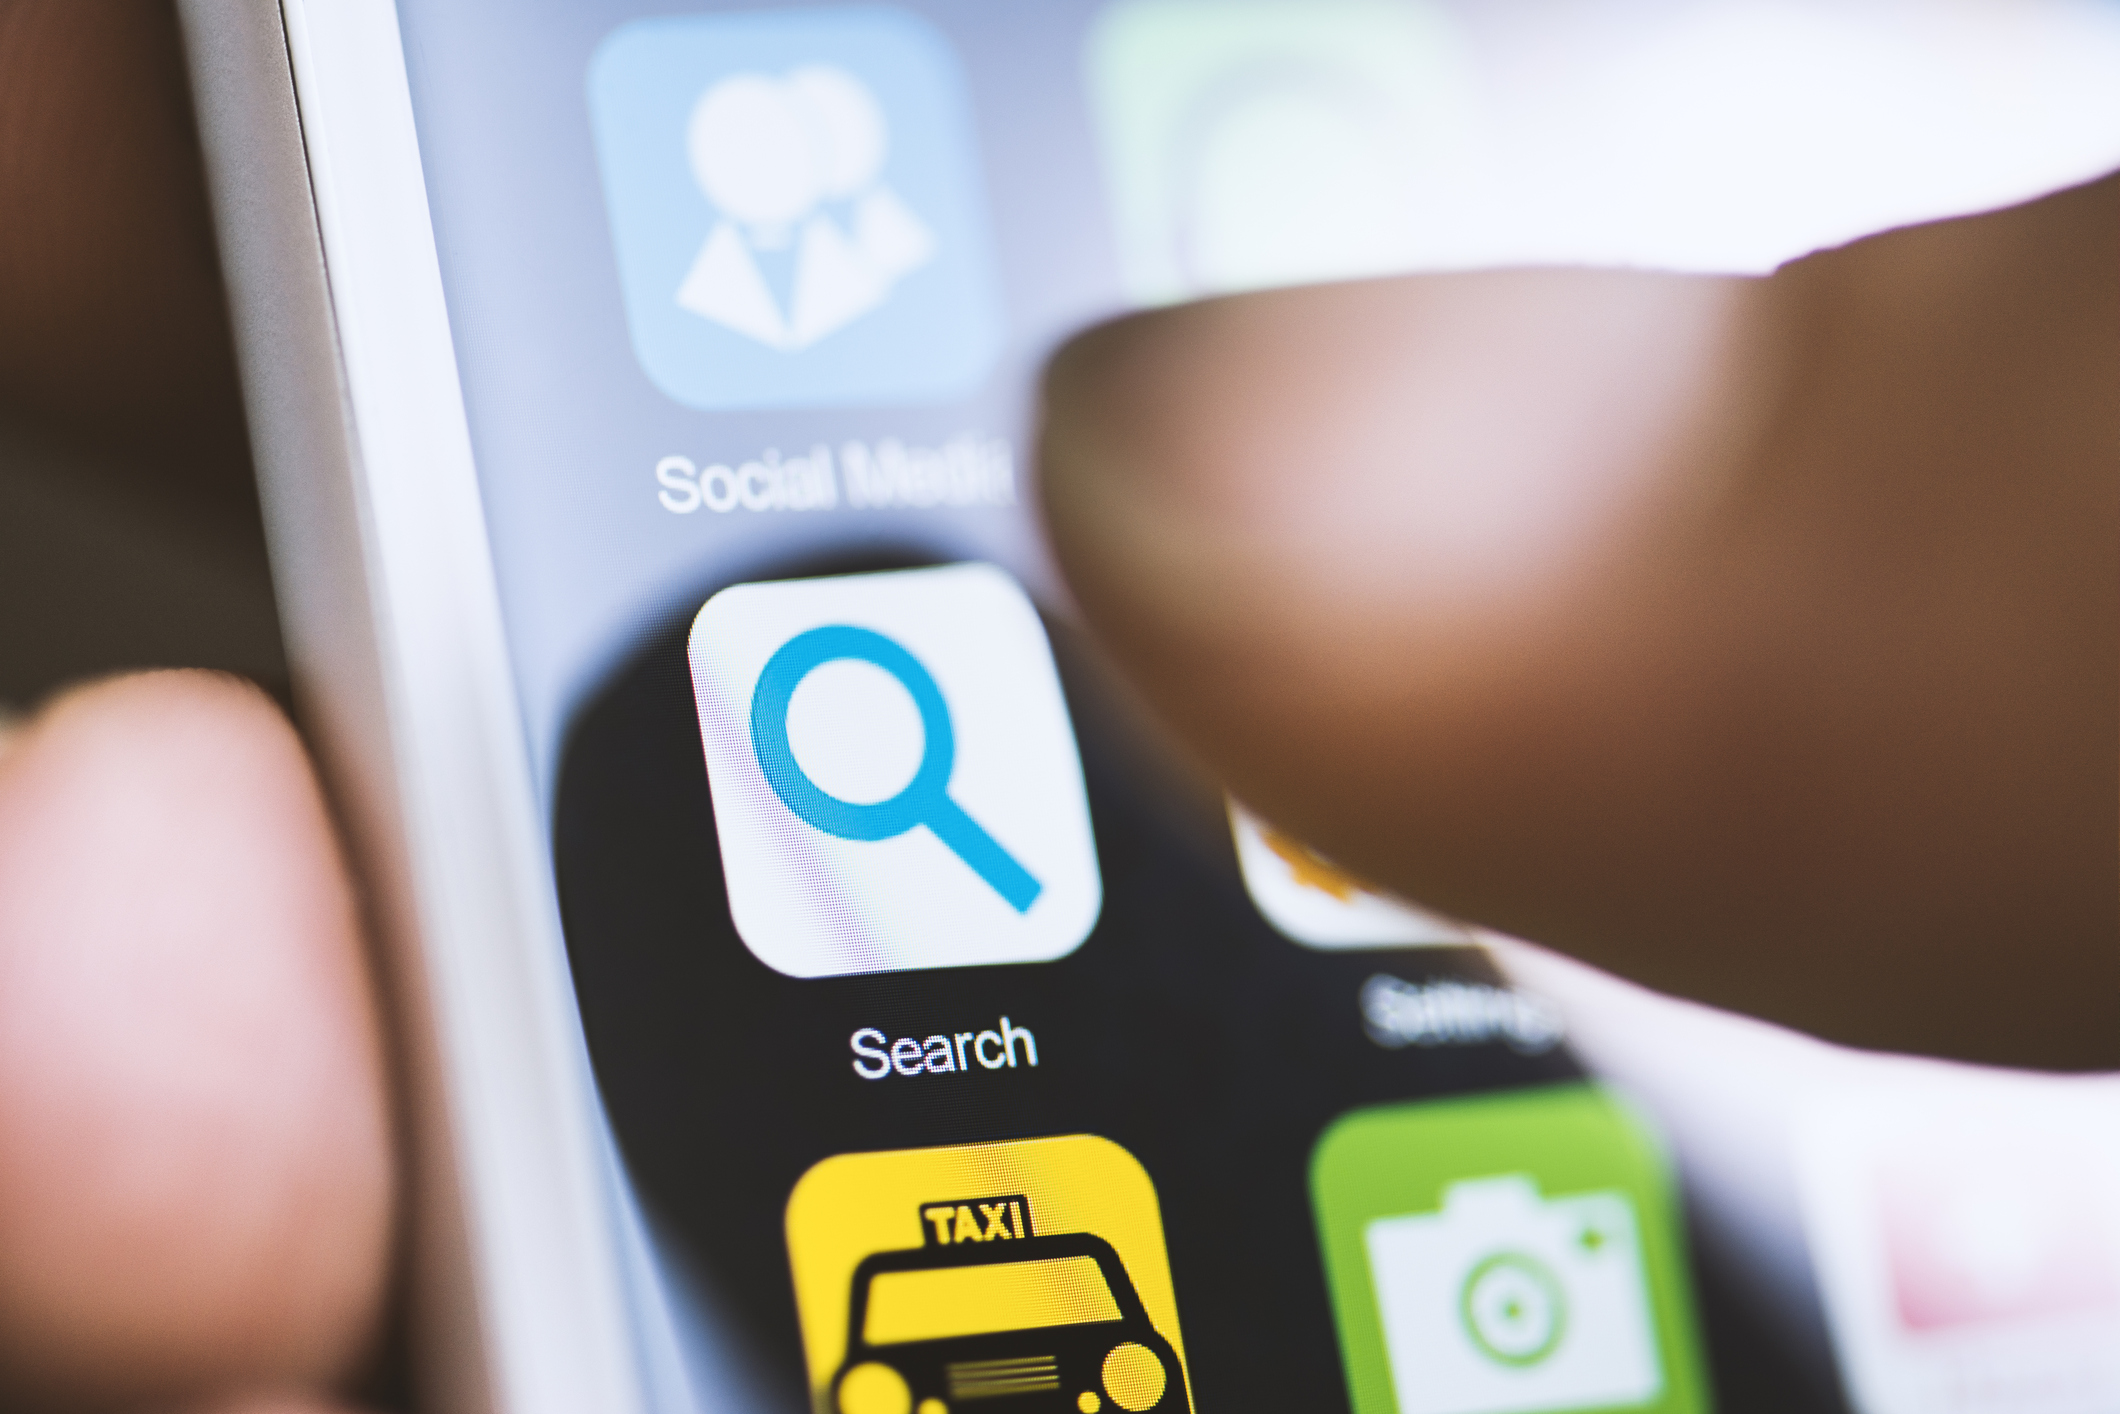 Learn how to increase your app's visibility through App Store Optimization.